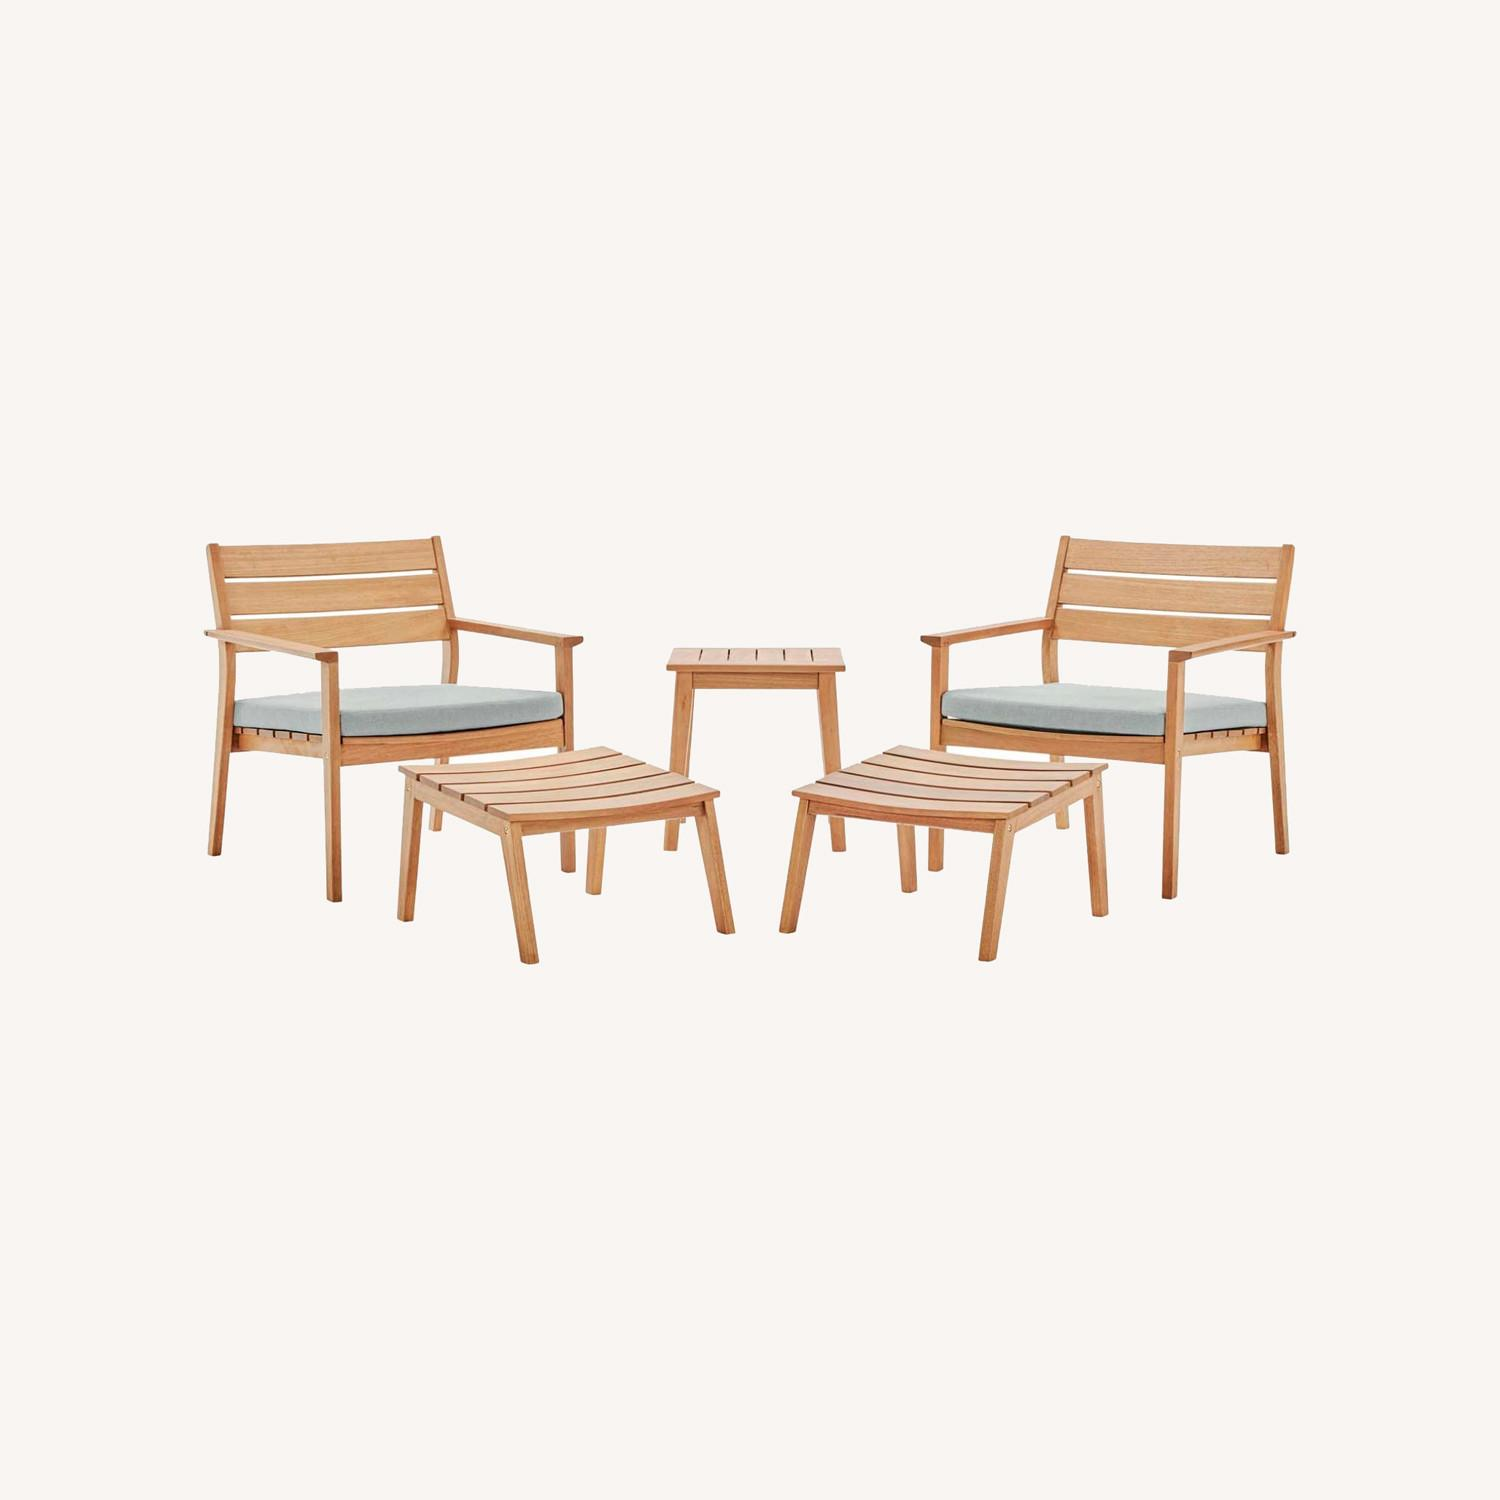 5-Piece Outdoor Patio Set In Ash Wood Finish - image-7